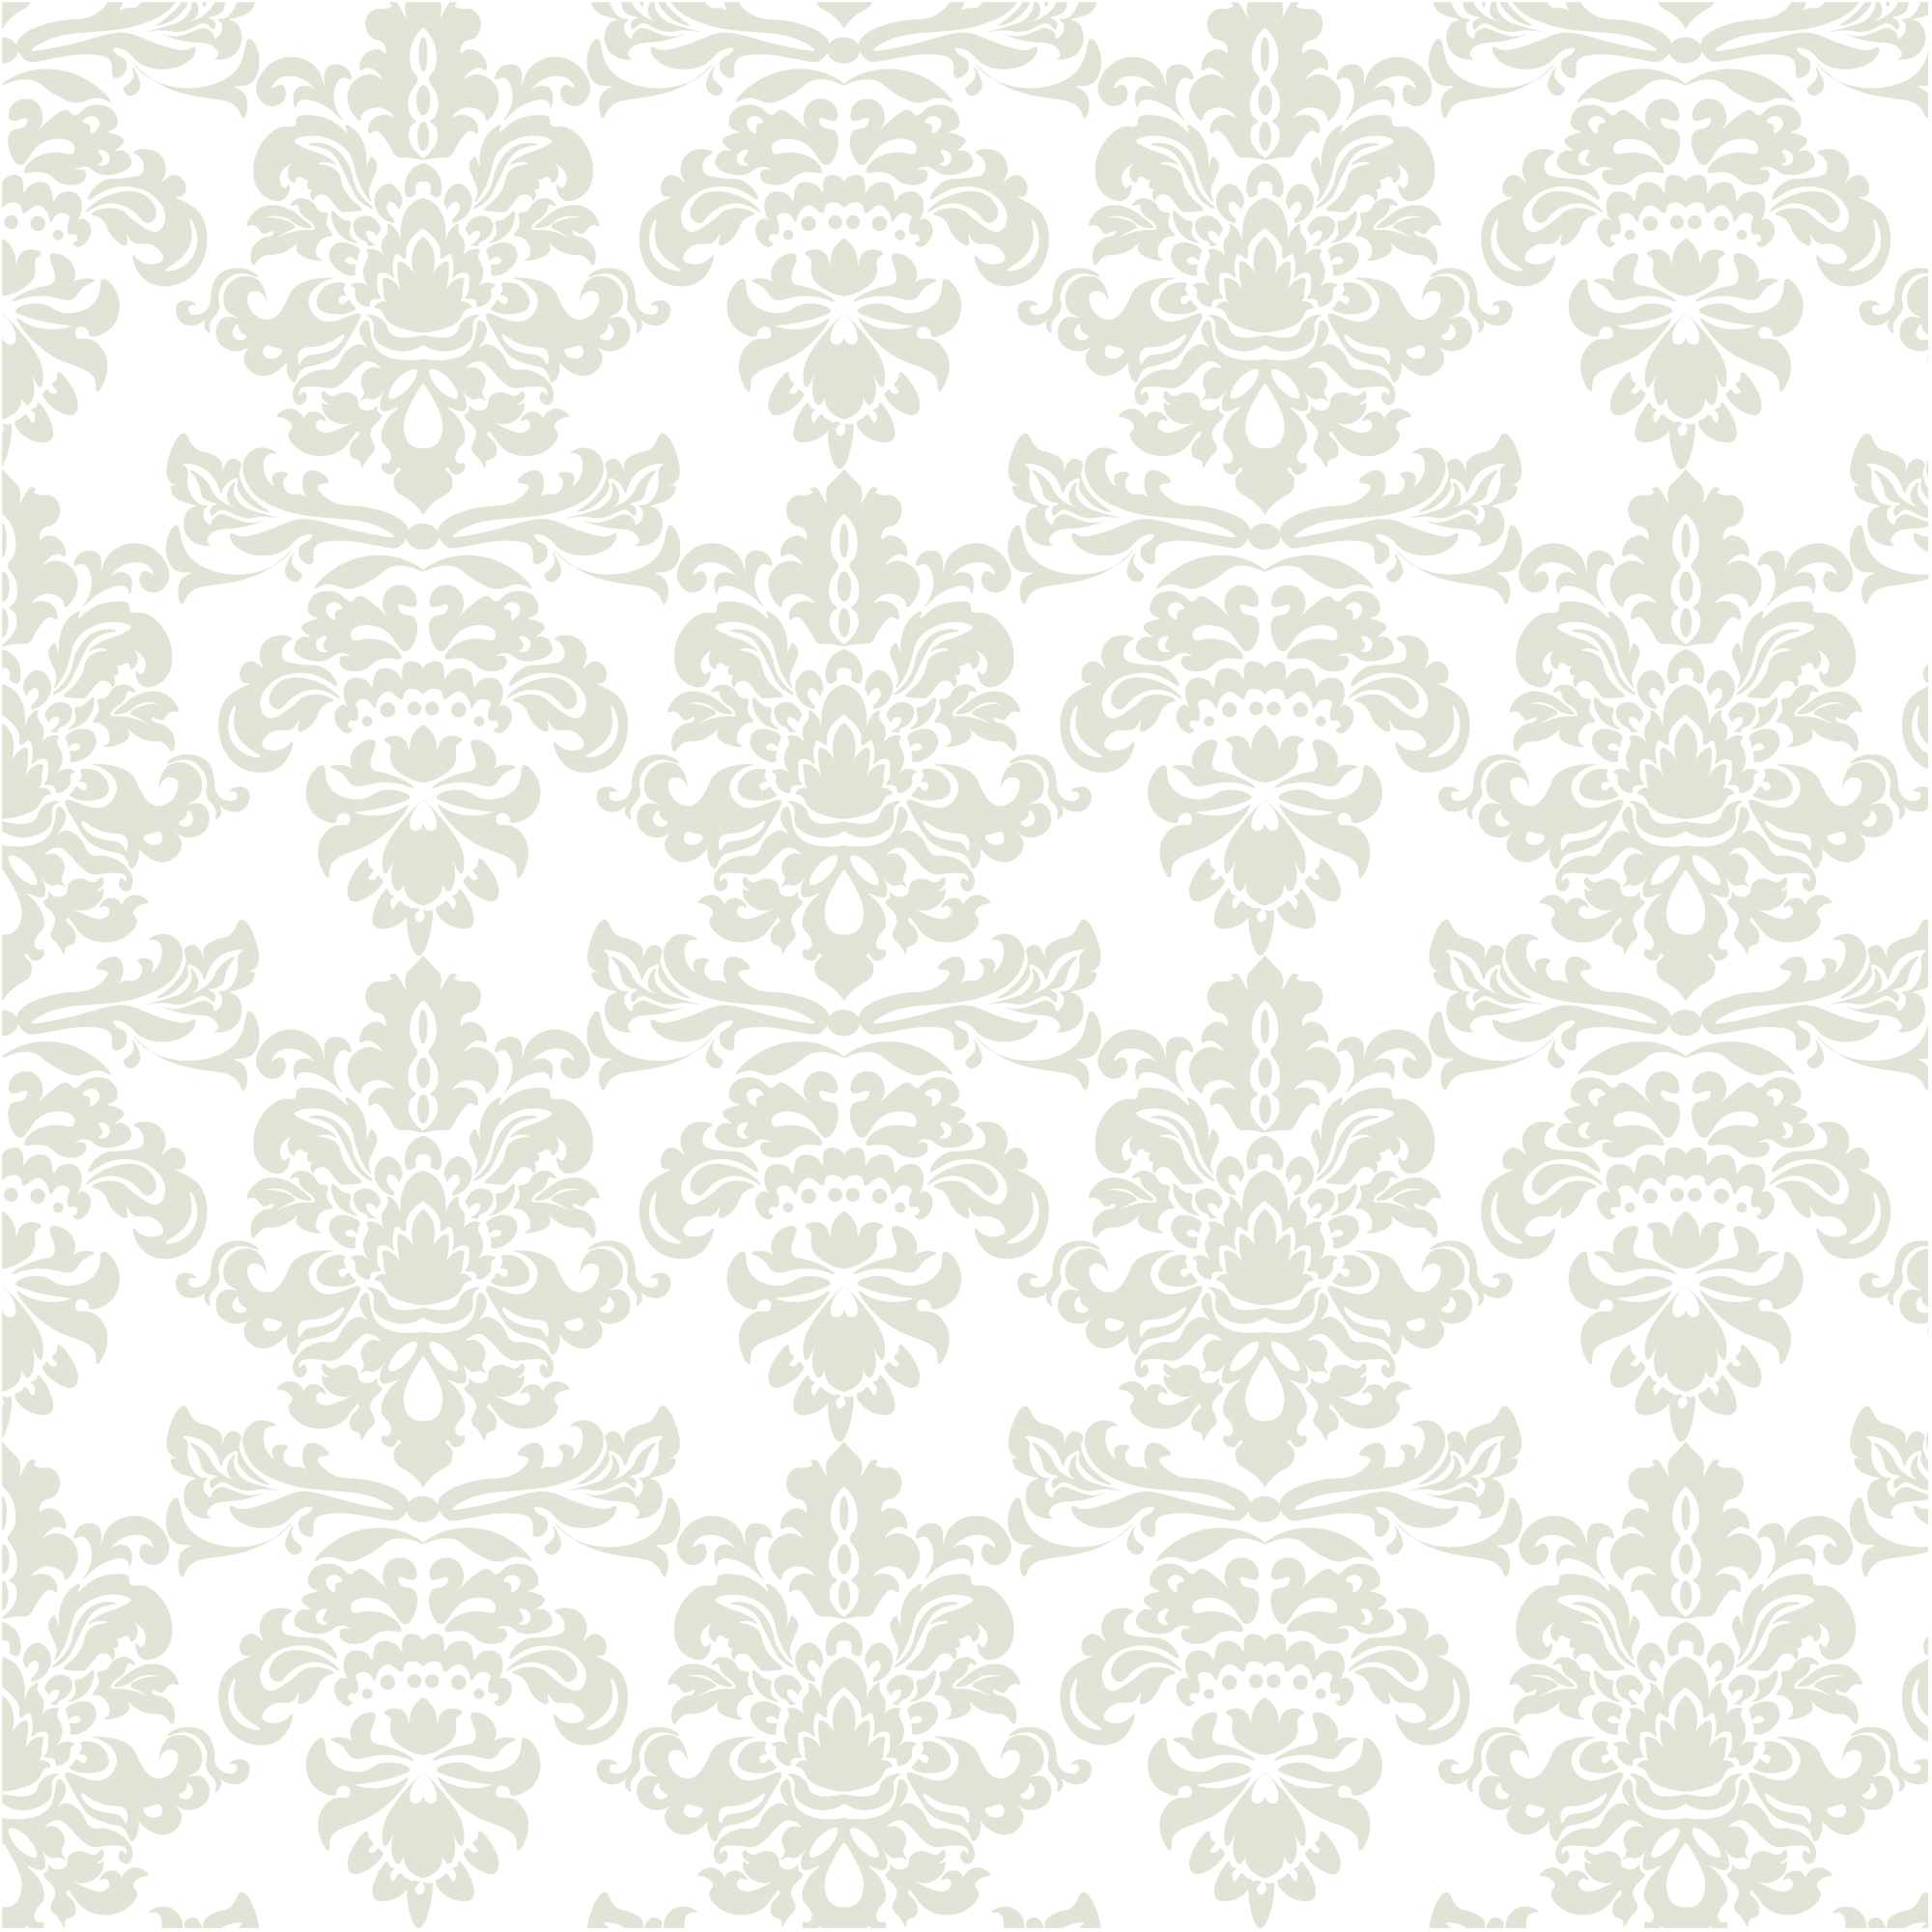 Light colors ornamental pattern background